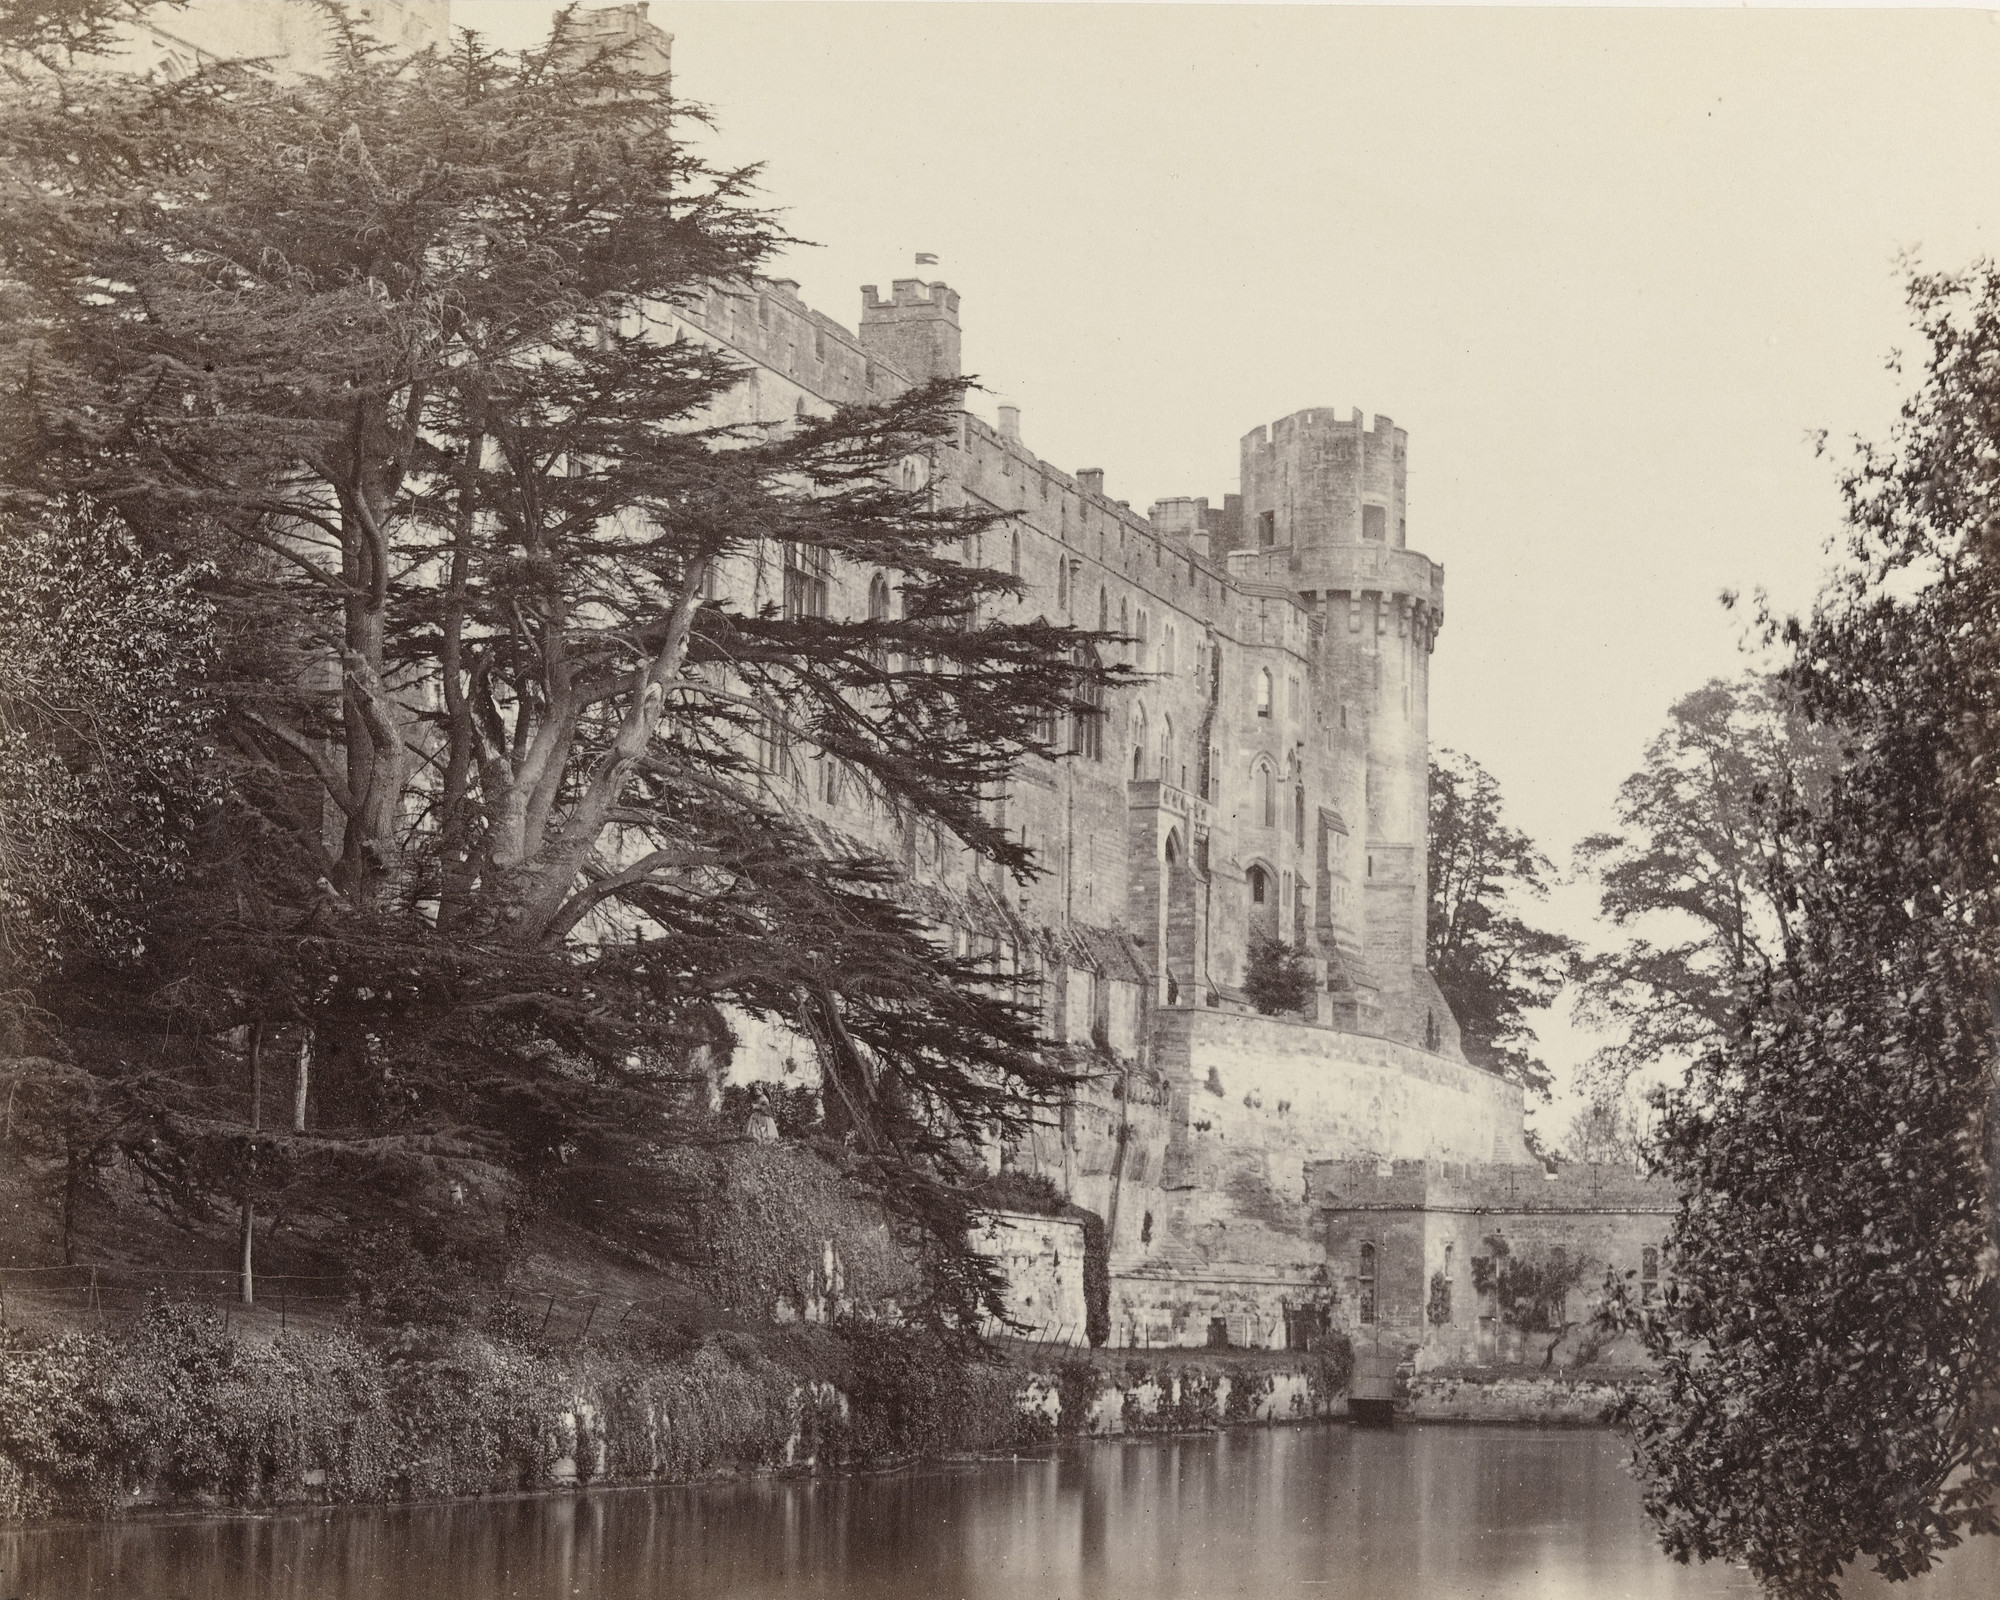 Francis Frith. Warwick Castle. c. 1860